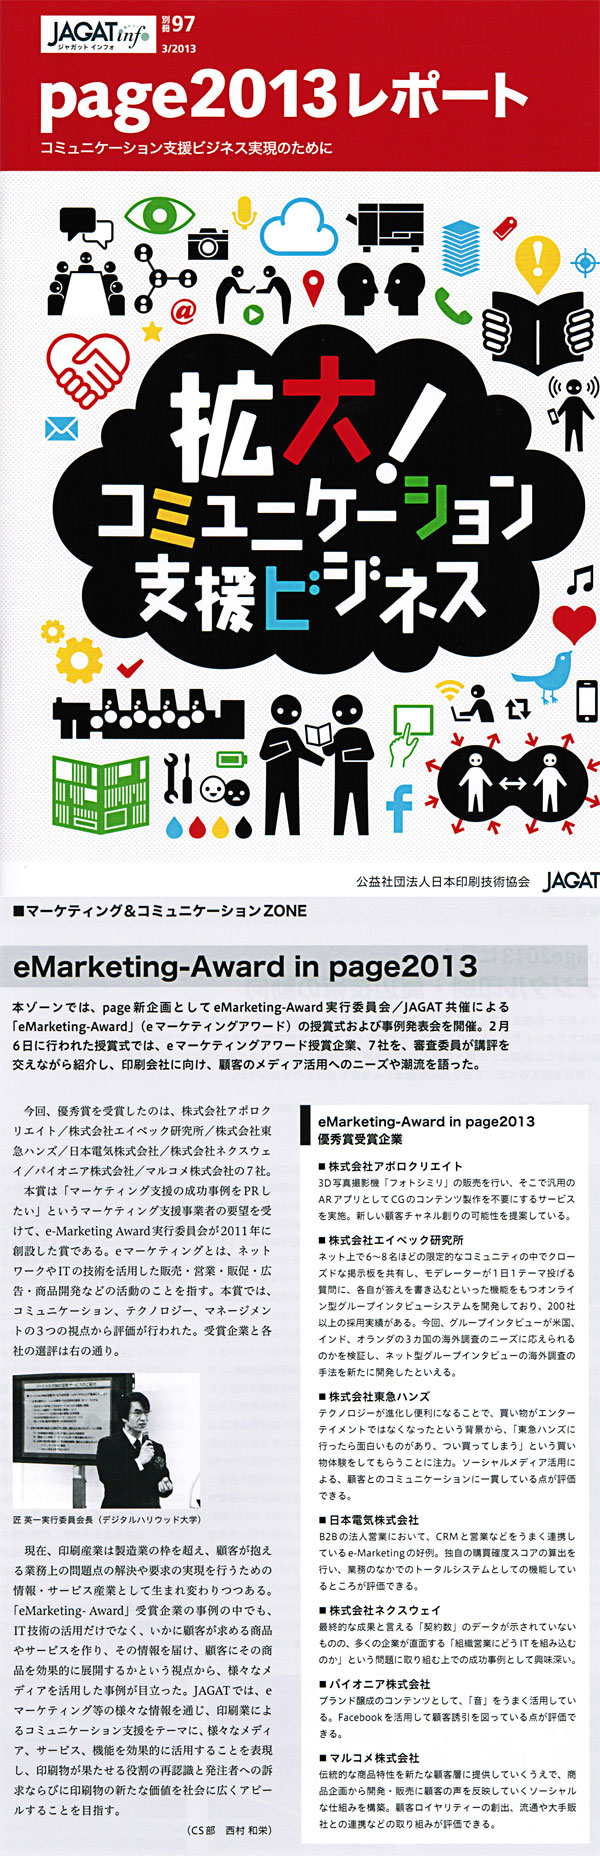 eMarketing-Award in page2013